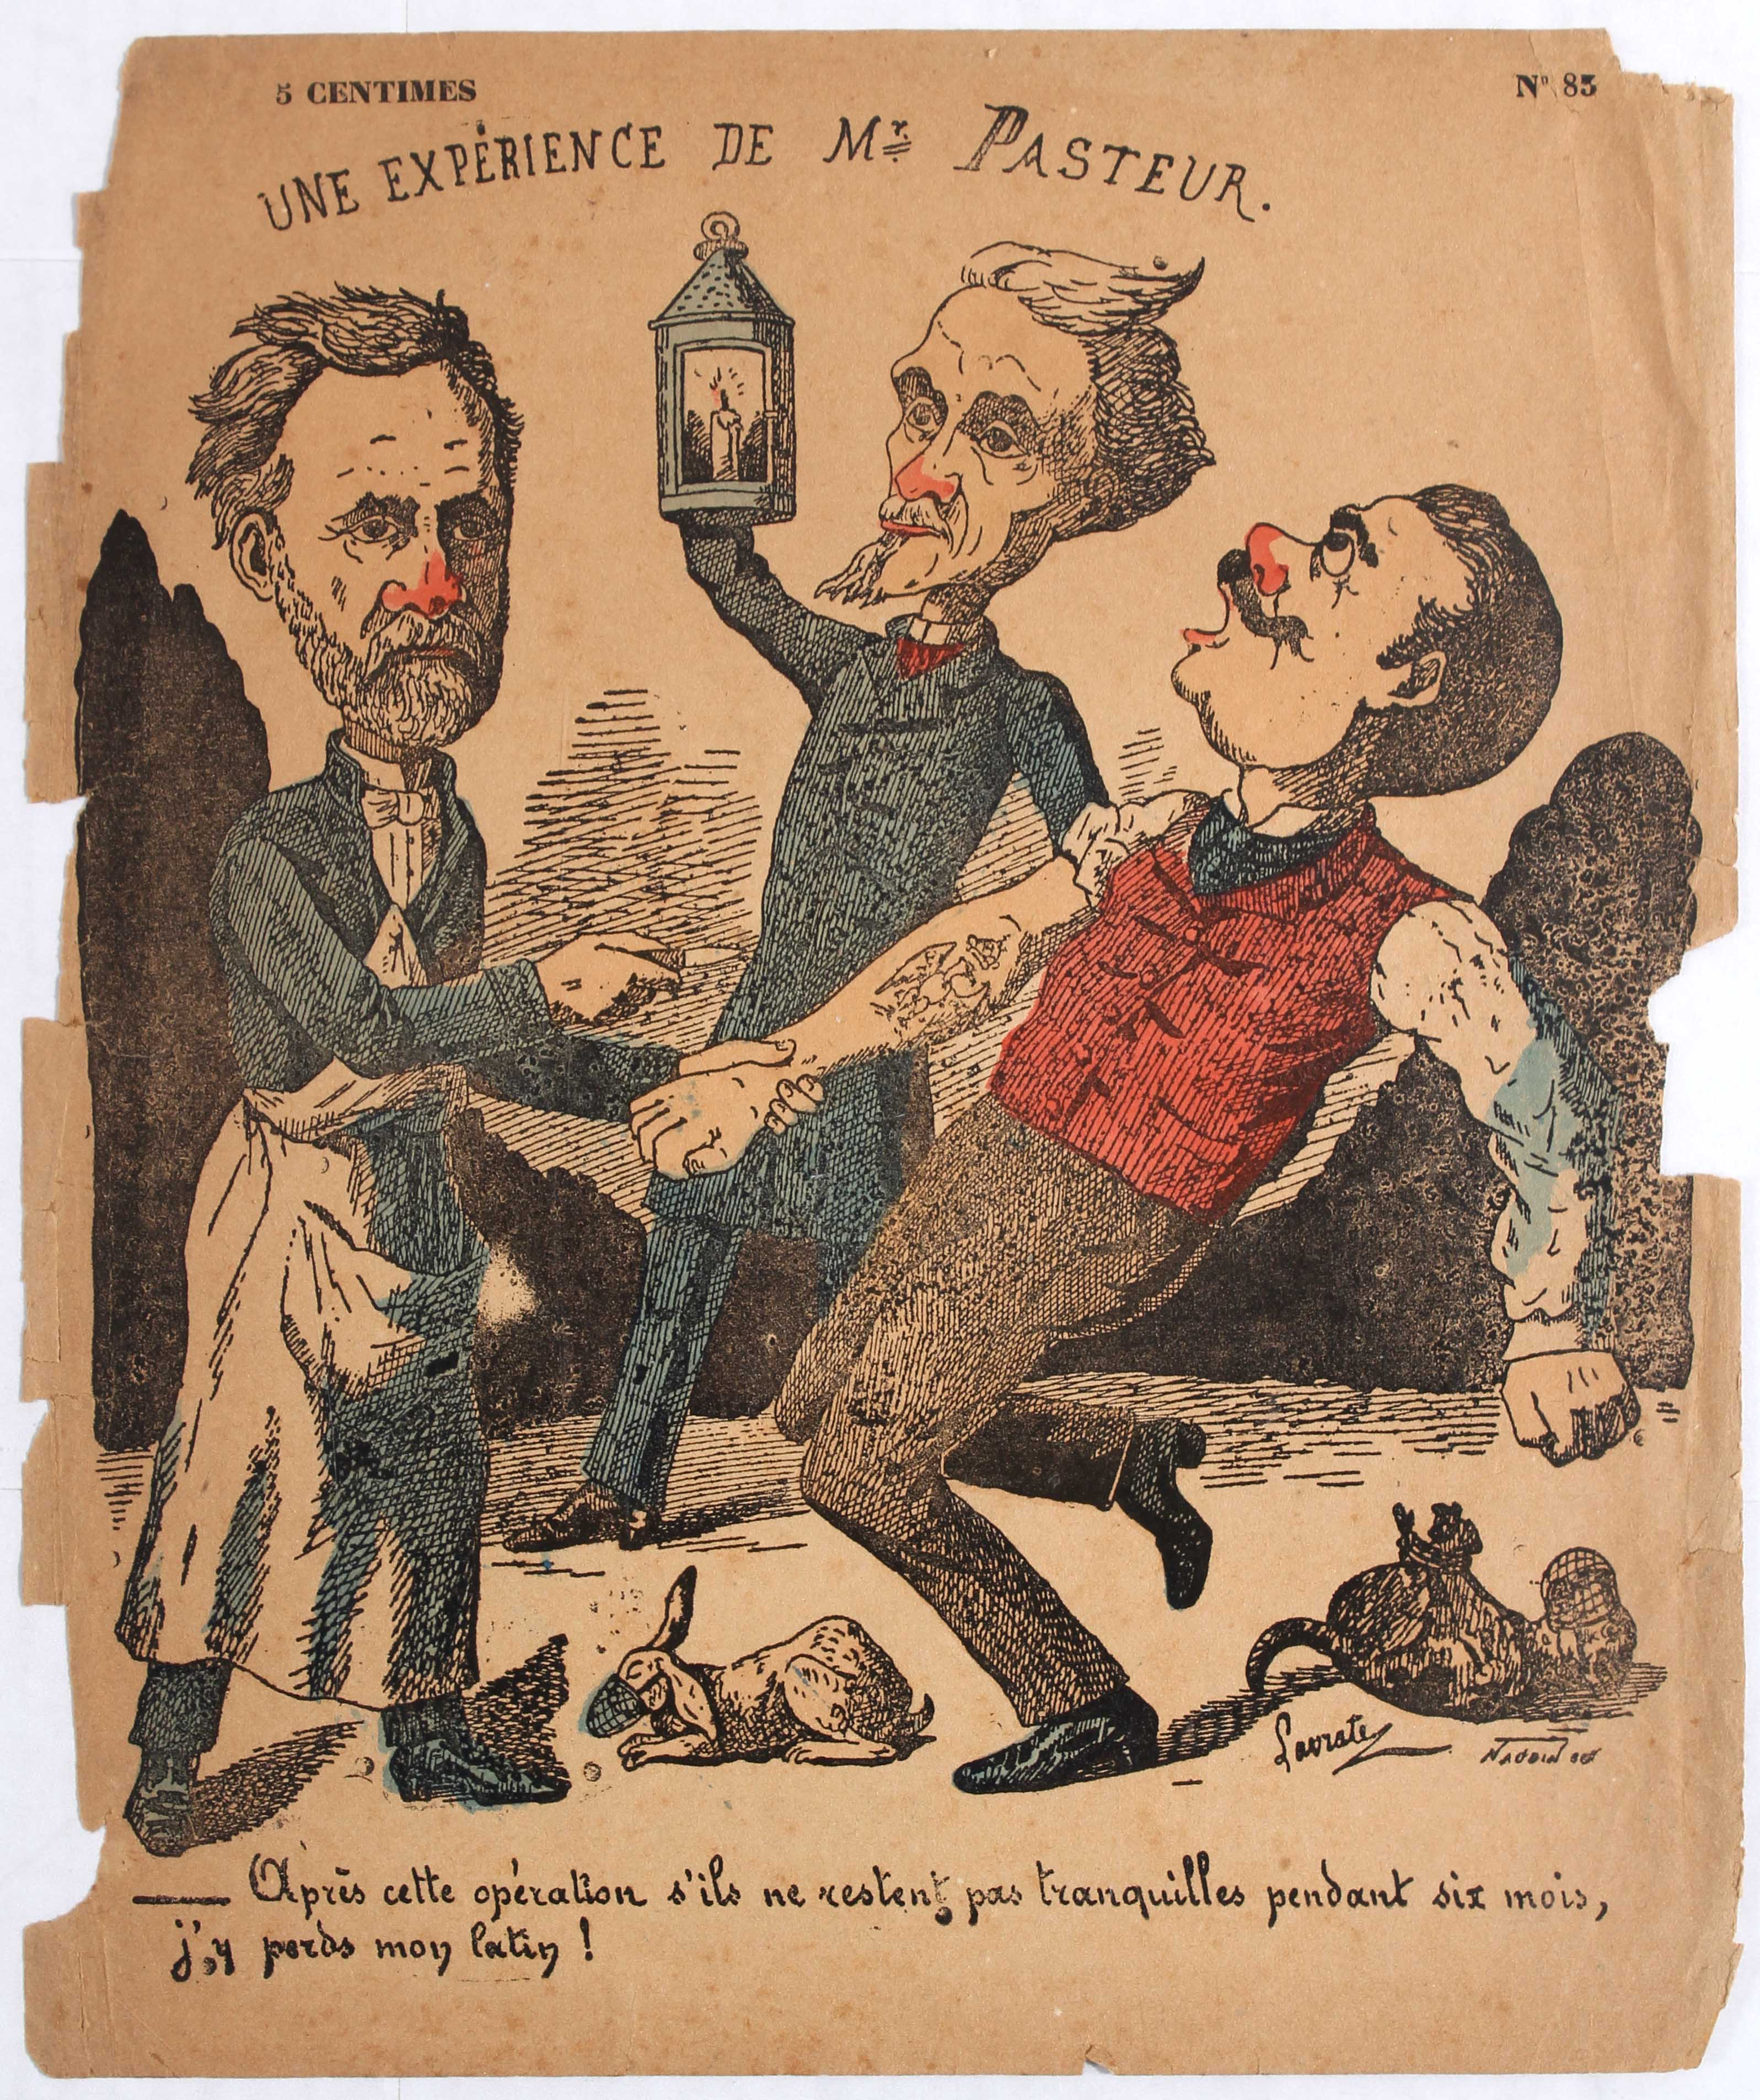 Advertising Poster Caricature Lavrate An experiment Pasteur